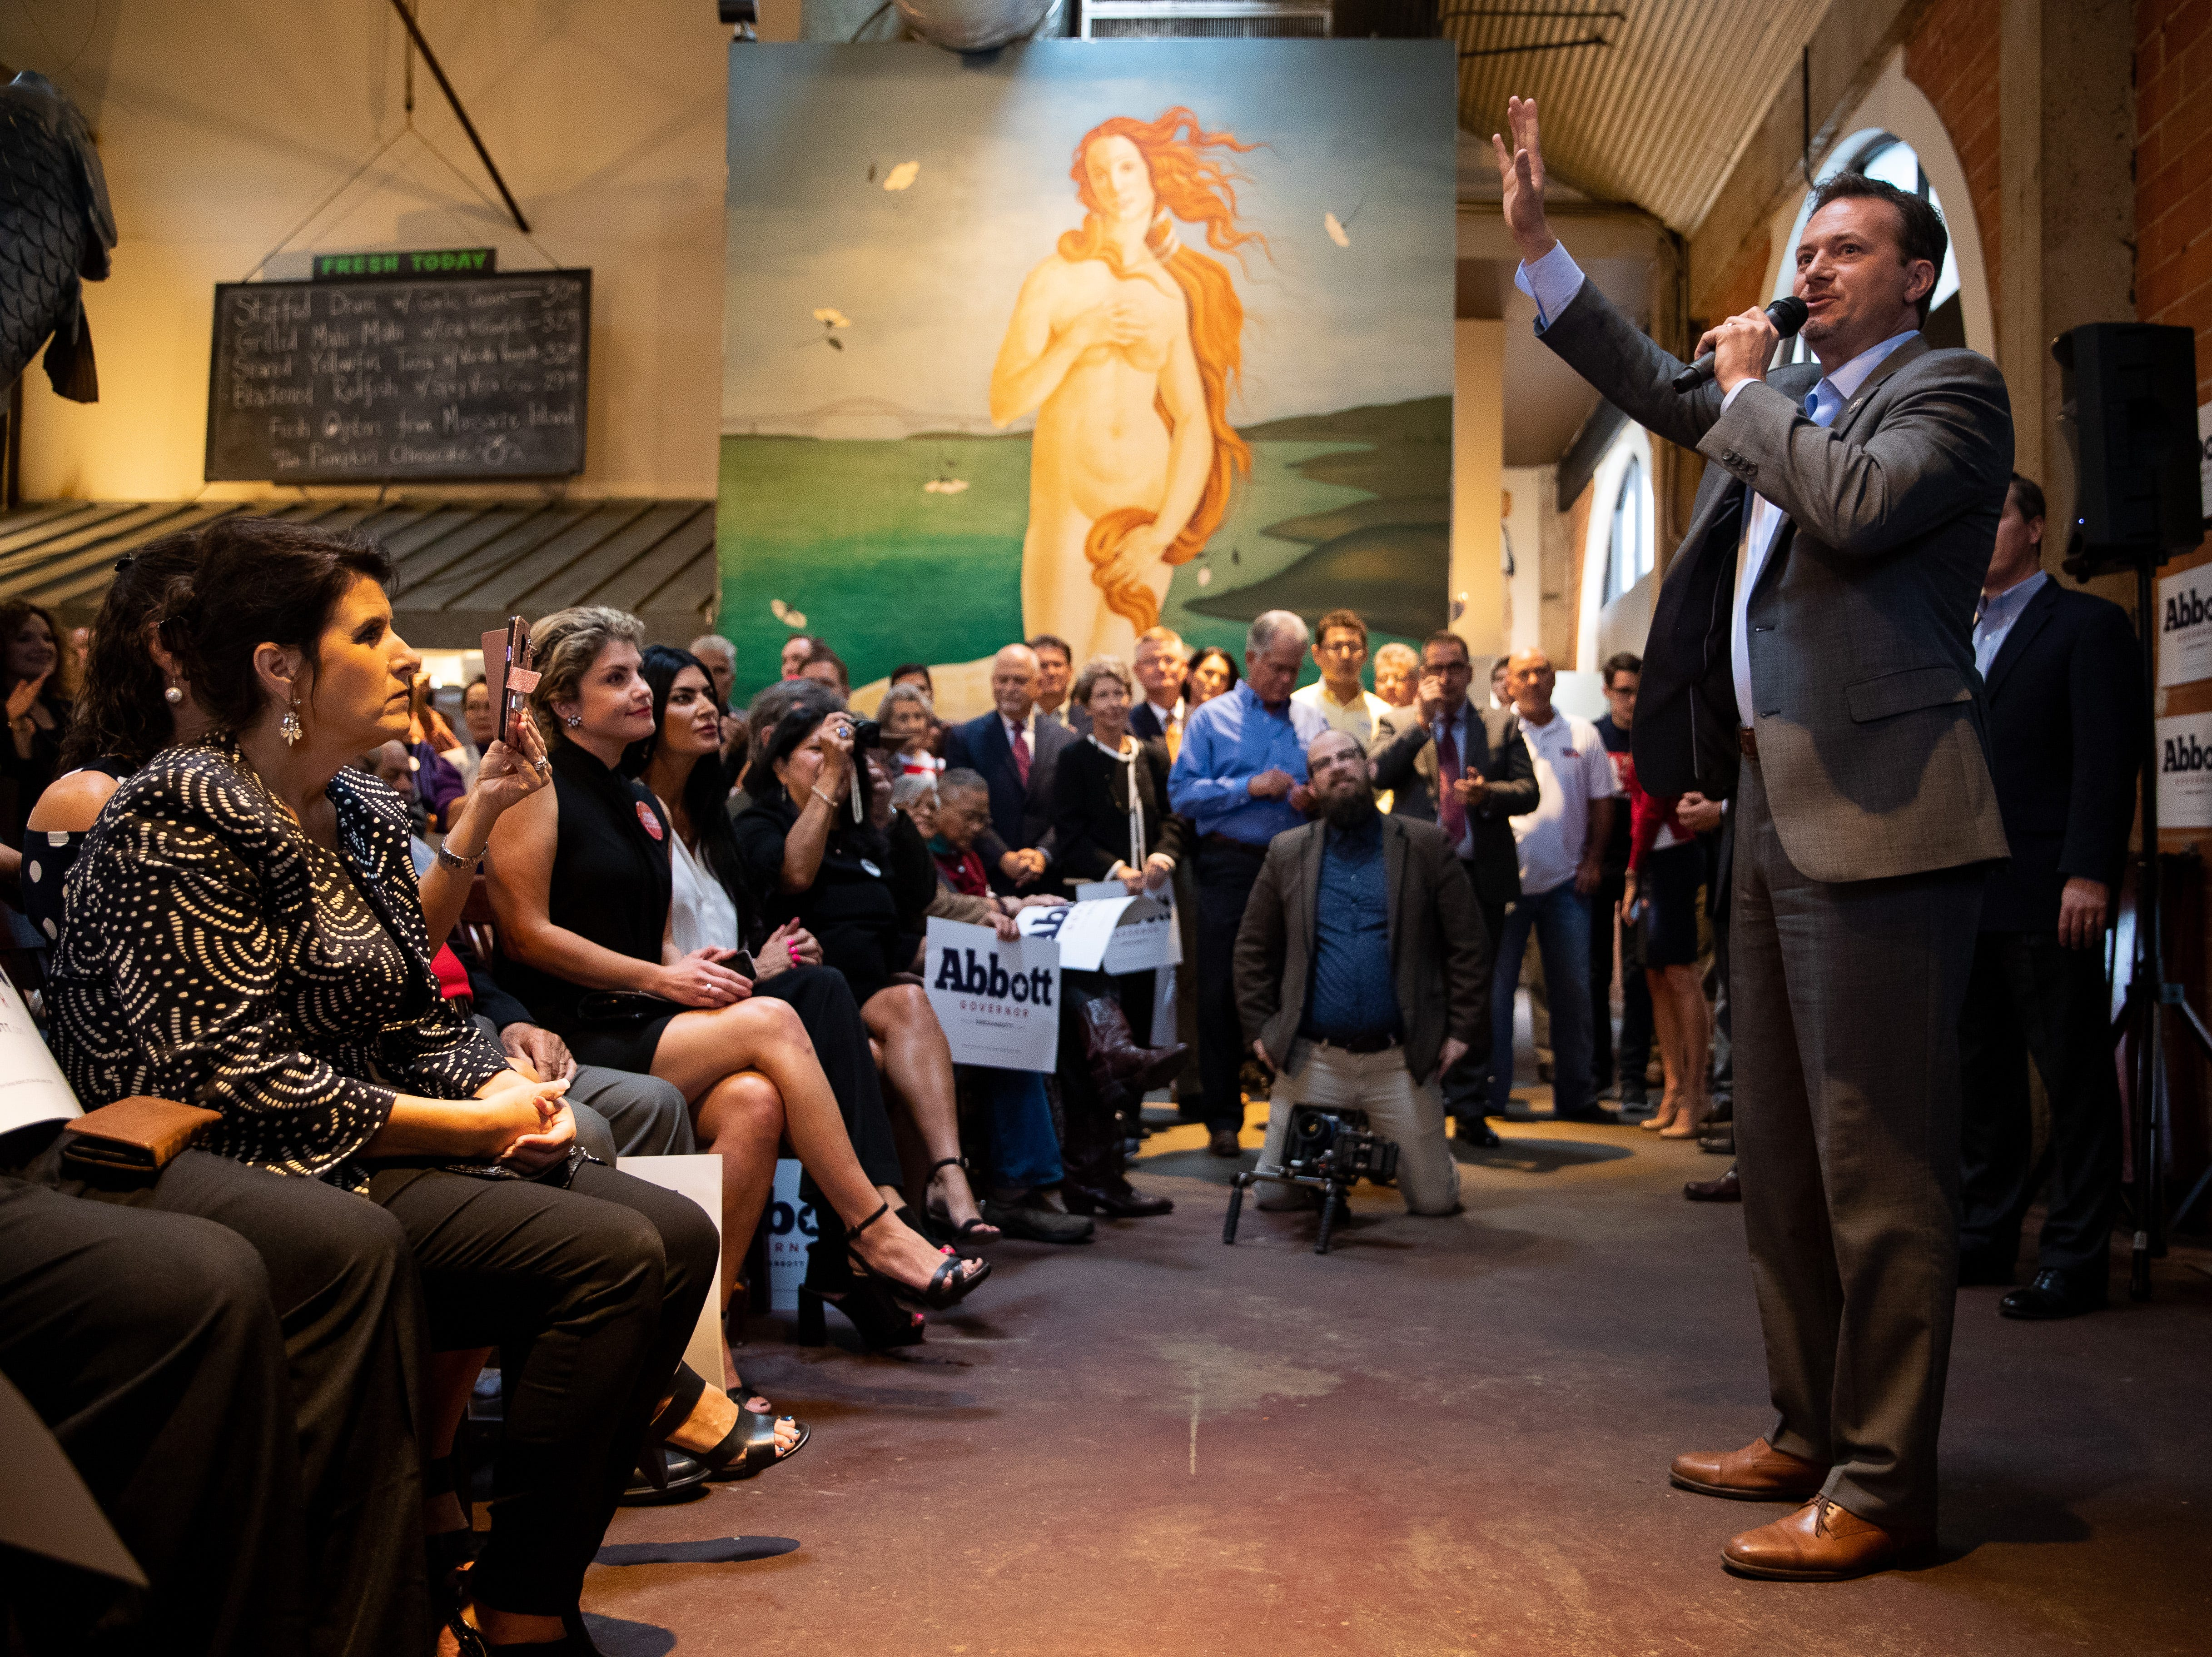 U.S. Rep. Michael Cloud T.X speaks at a Get Out the Vote stop in Corpus Christi at Water Street Oyster Bar on Thursday, Oct. 25, 2018.